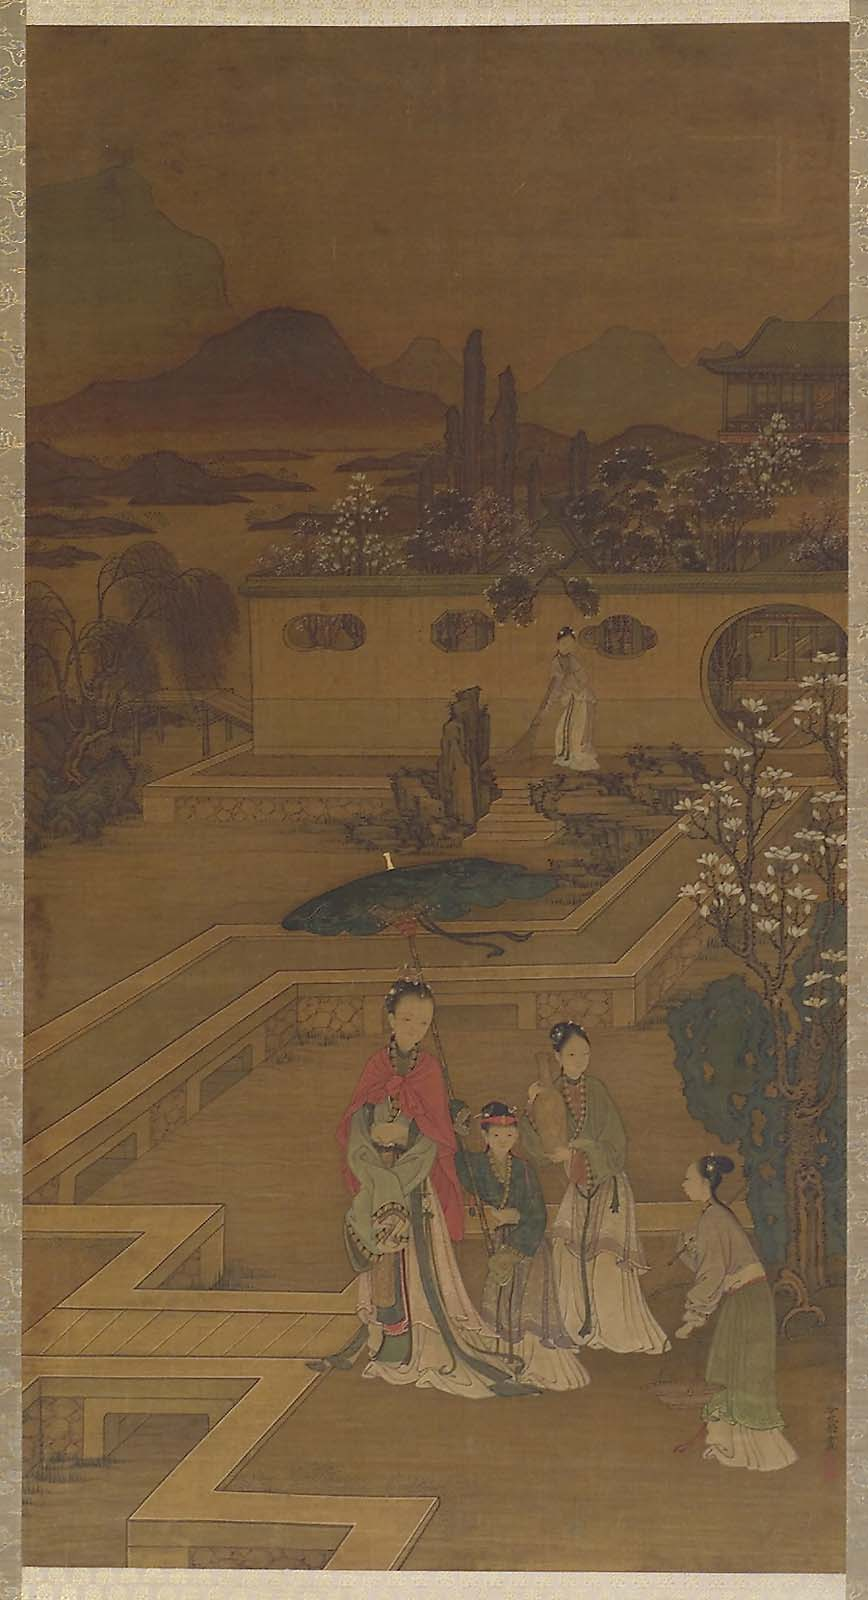 Lady with attendants in a garden | Museum of Fine Arts, Boston